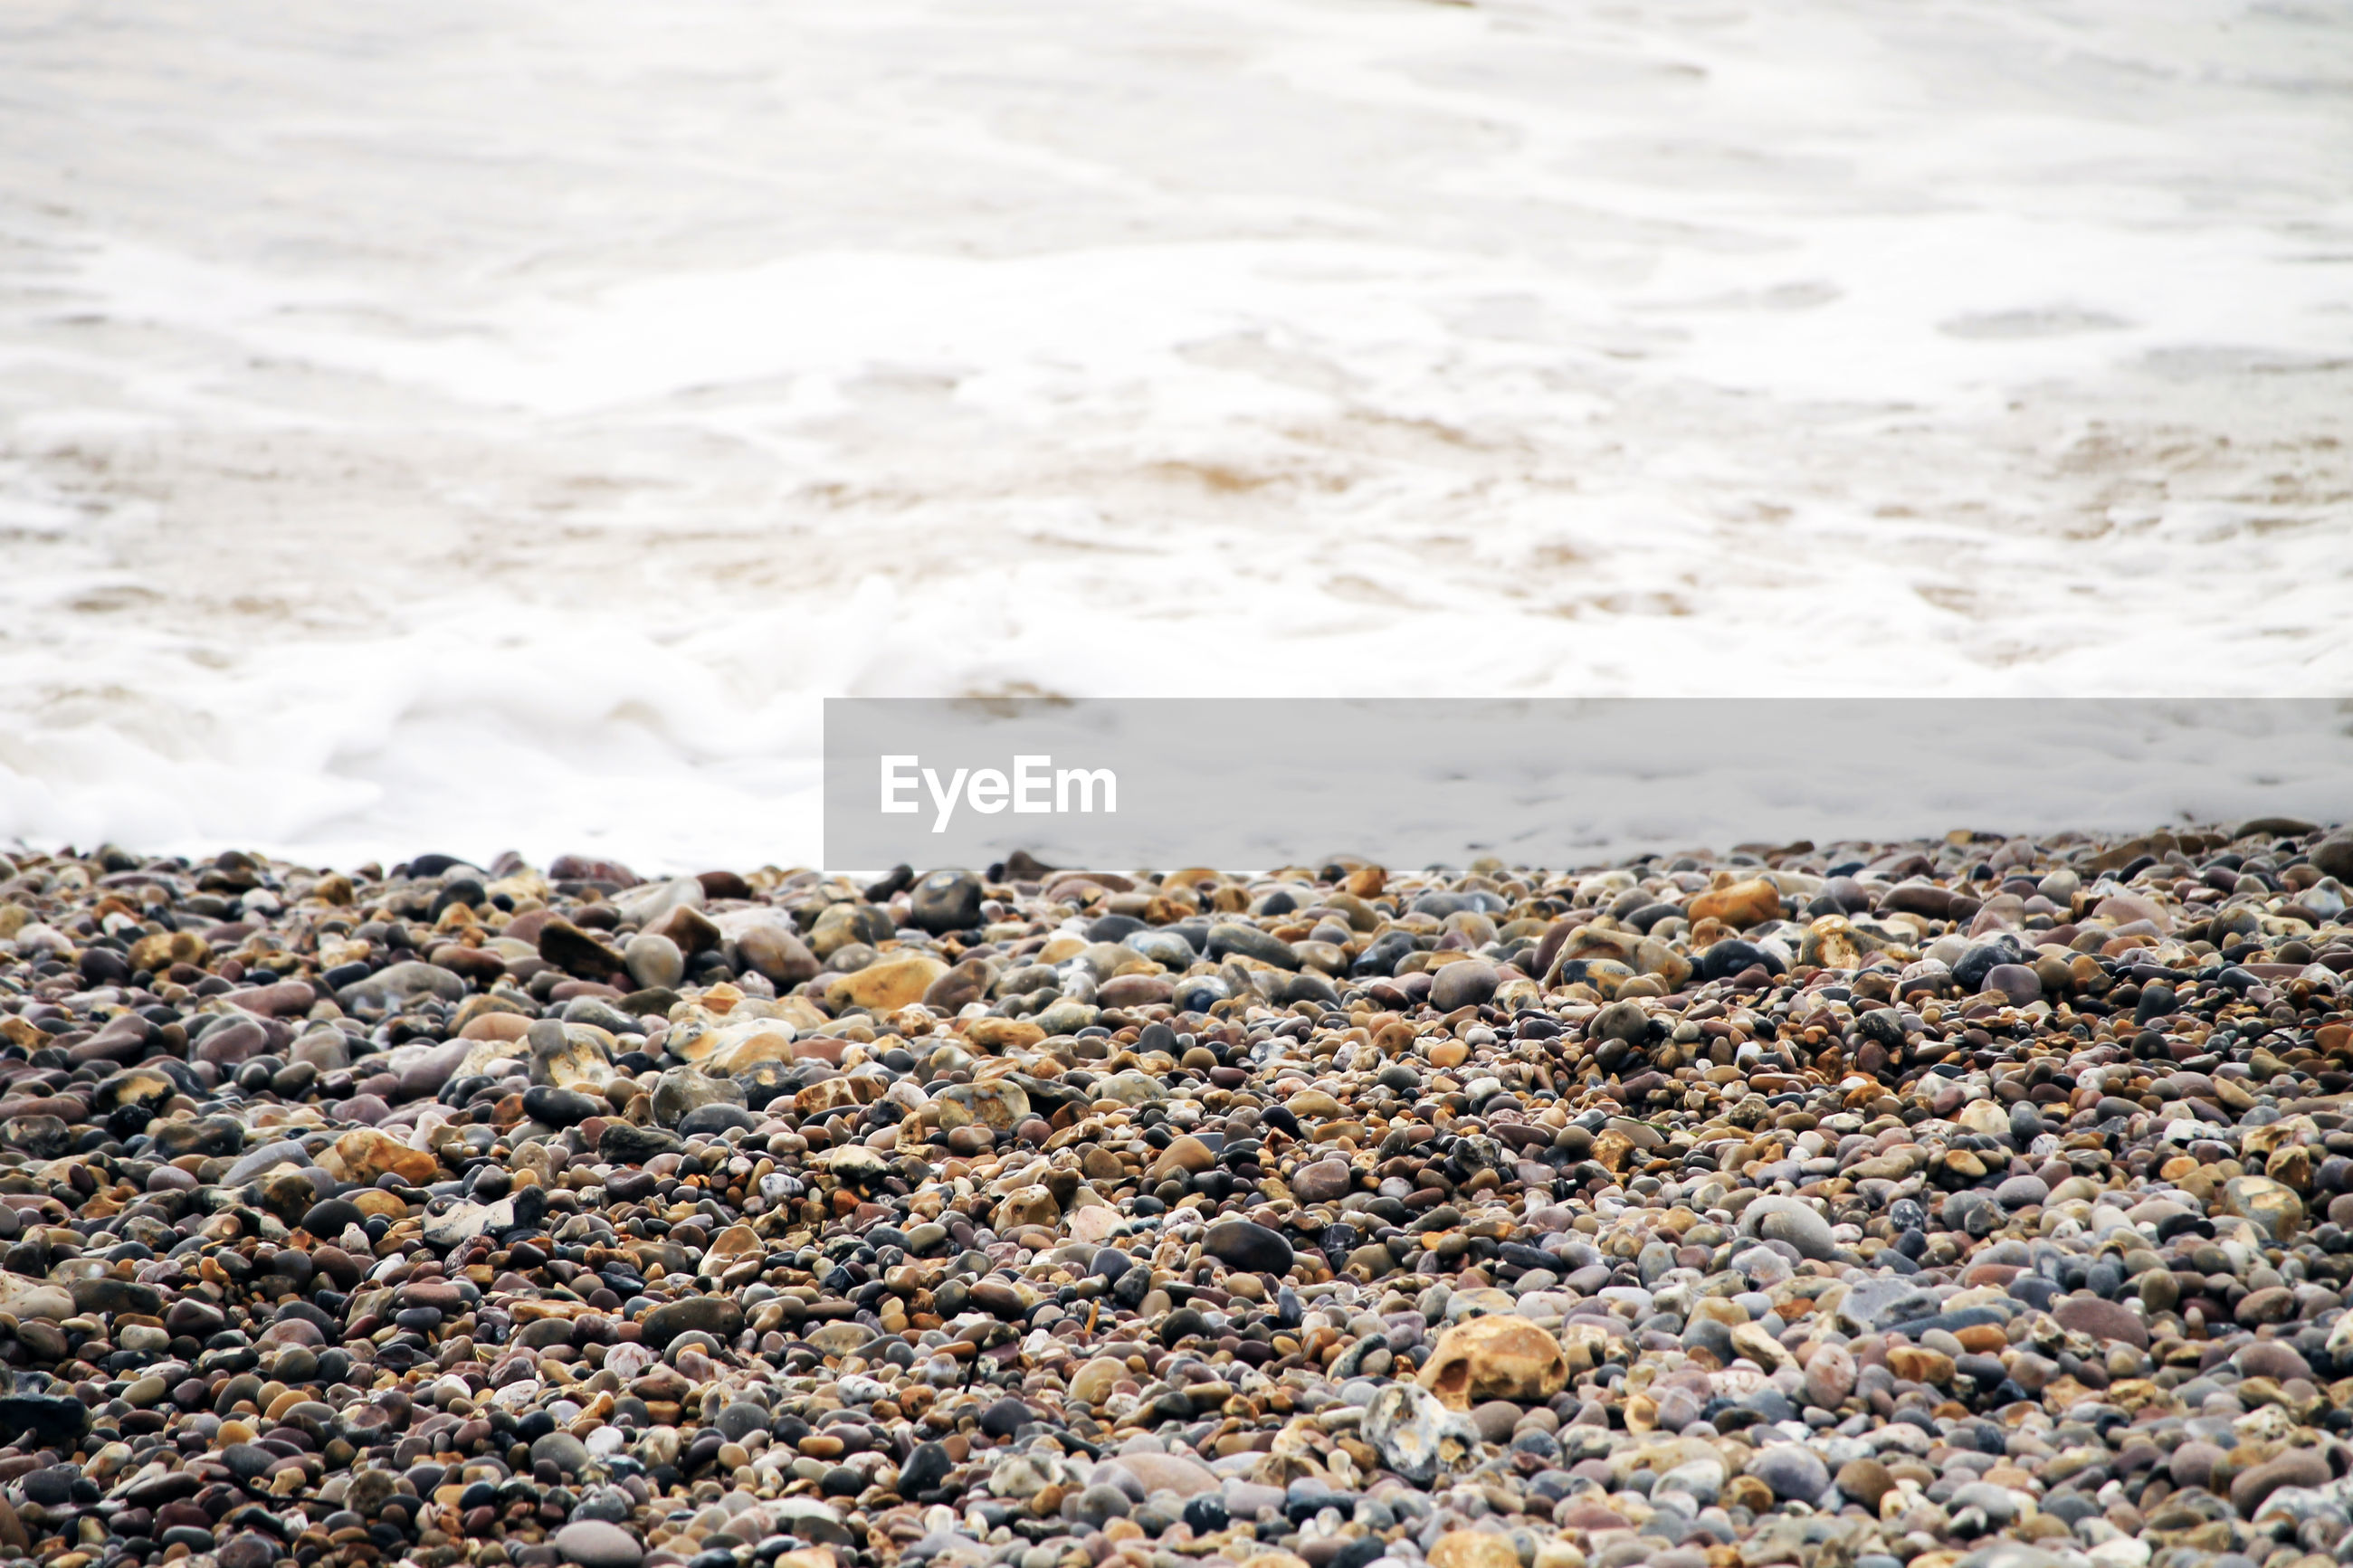 VIEW OF PEBBLES ON BEACH